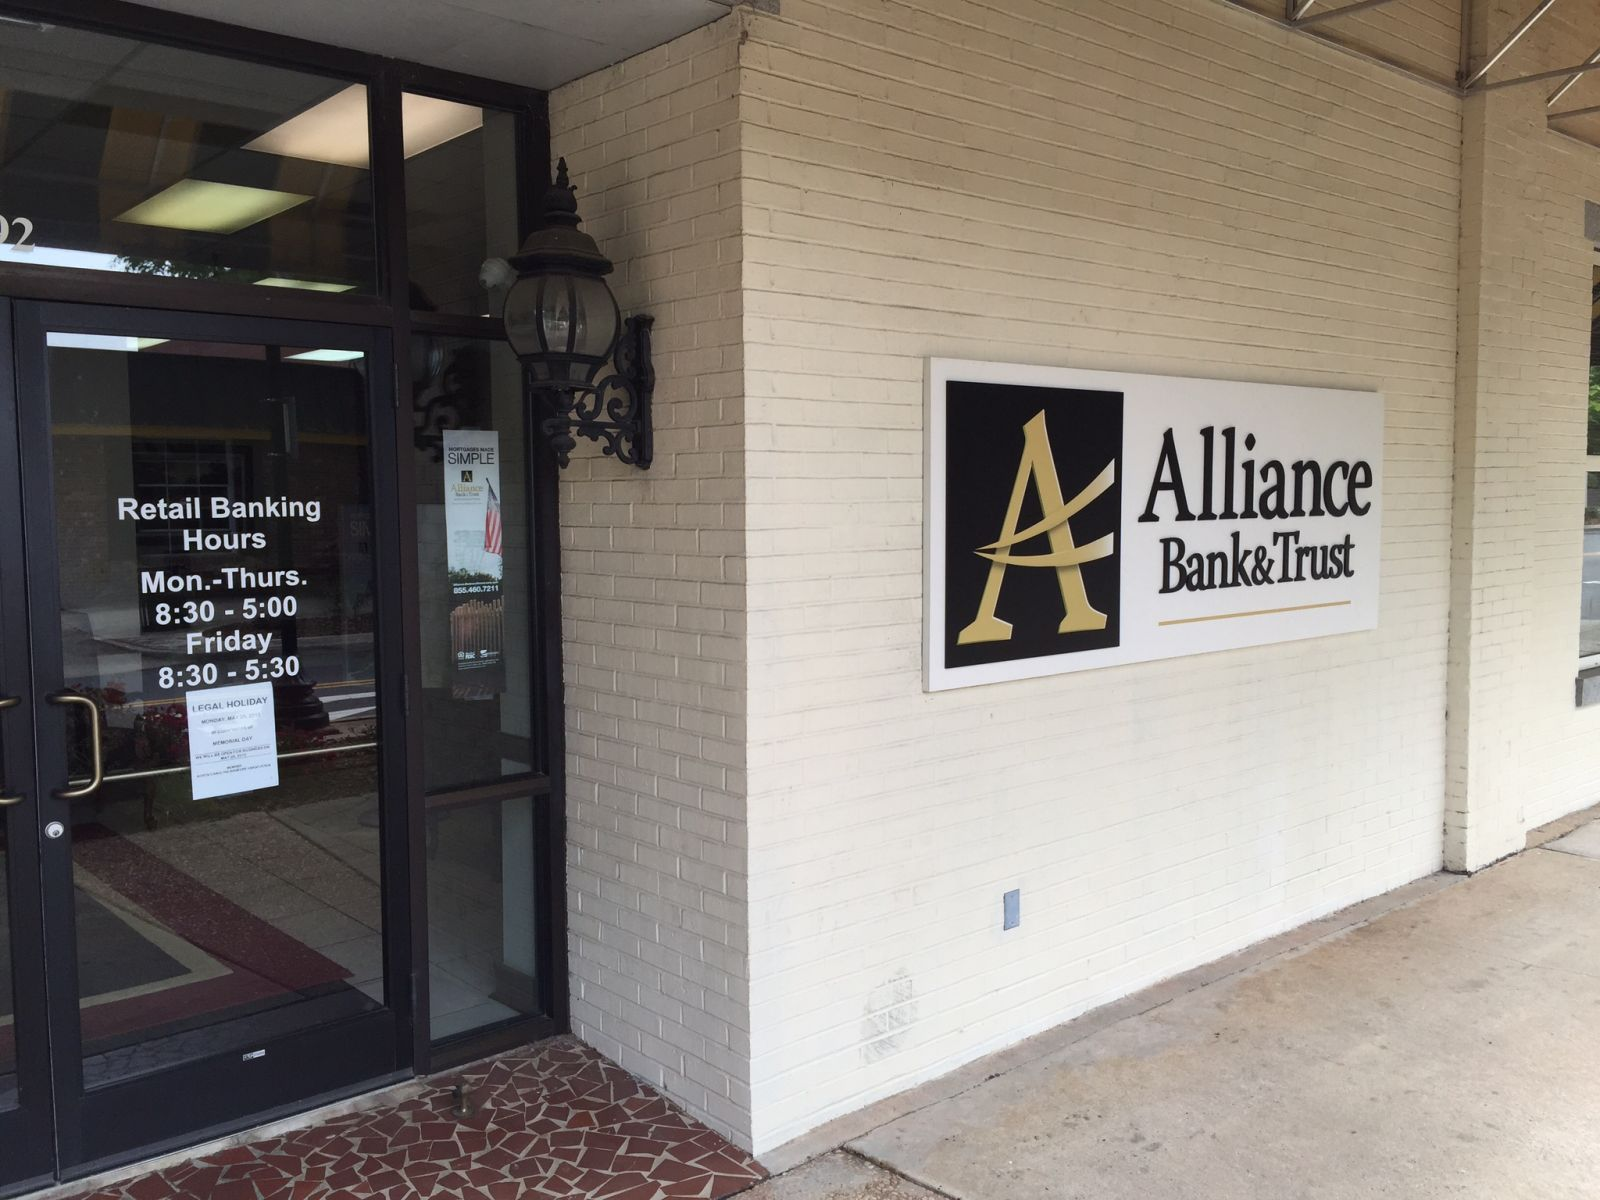 Alliance Bank and Trust